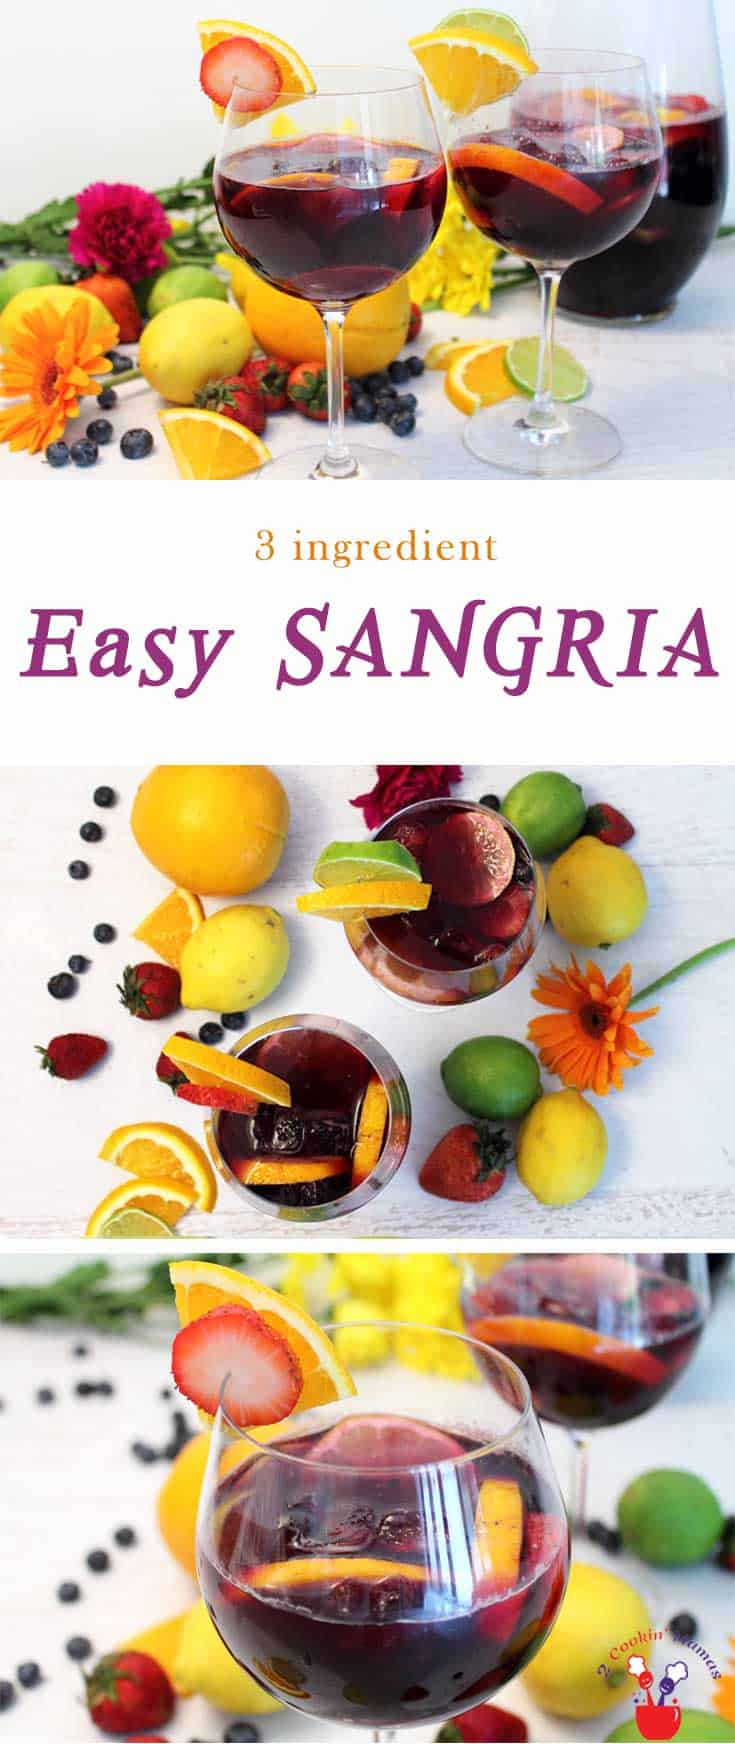 Easy Sangria | 2 Cookin Mamas Our easy sangria has just 3 ingredients. An inexpensive wine, Sprite & sliced fruit are all that's needed to make this favorite summer cocktail.